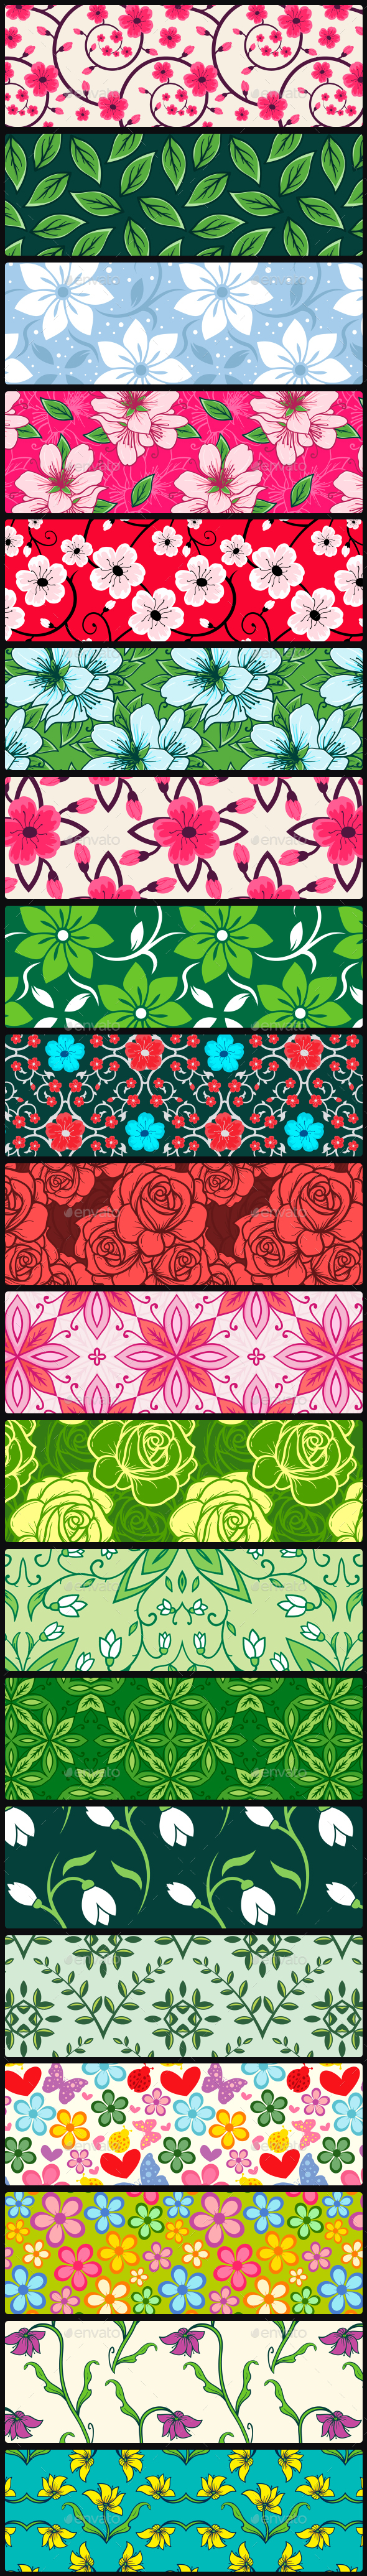 20 Spring Floral Seamless Vector Patterns - Patterns Decorative